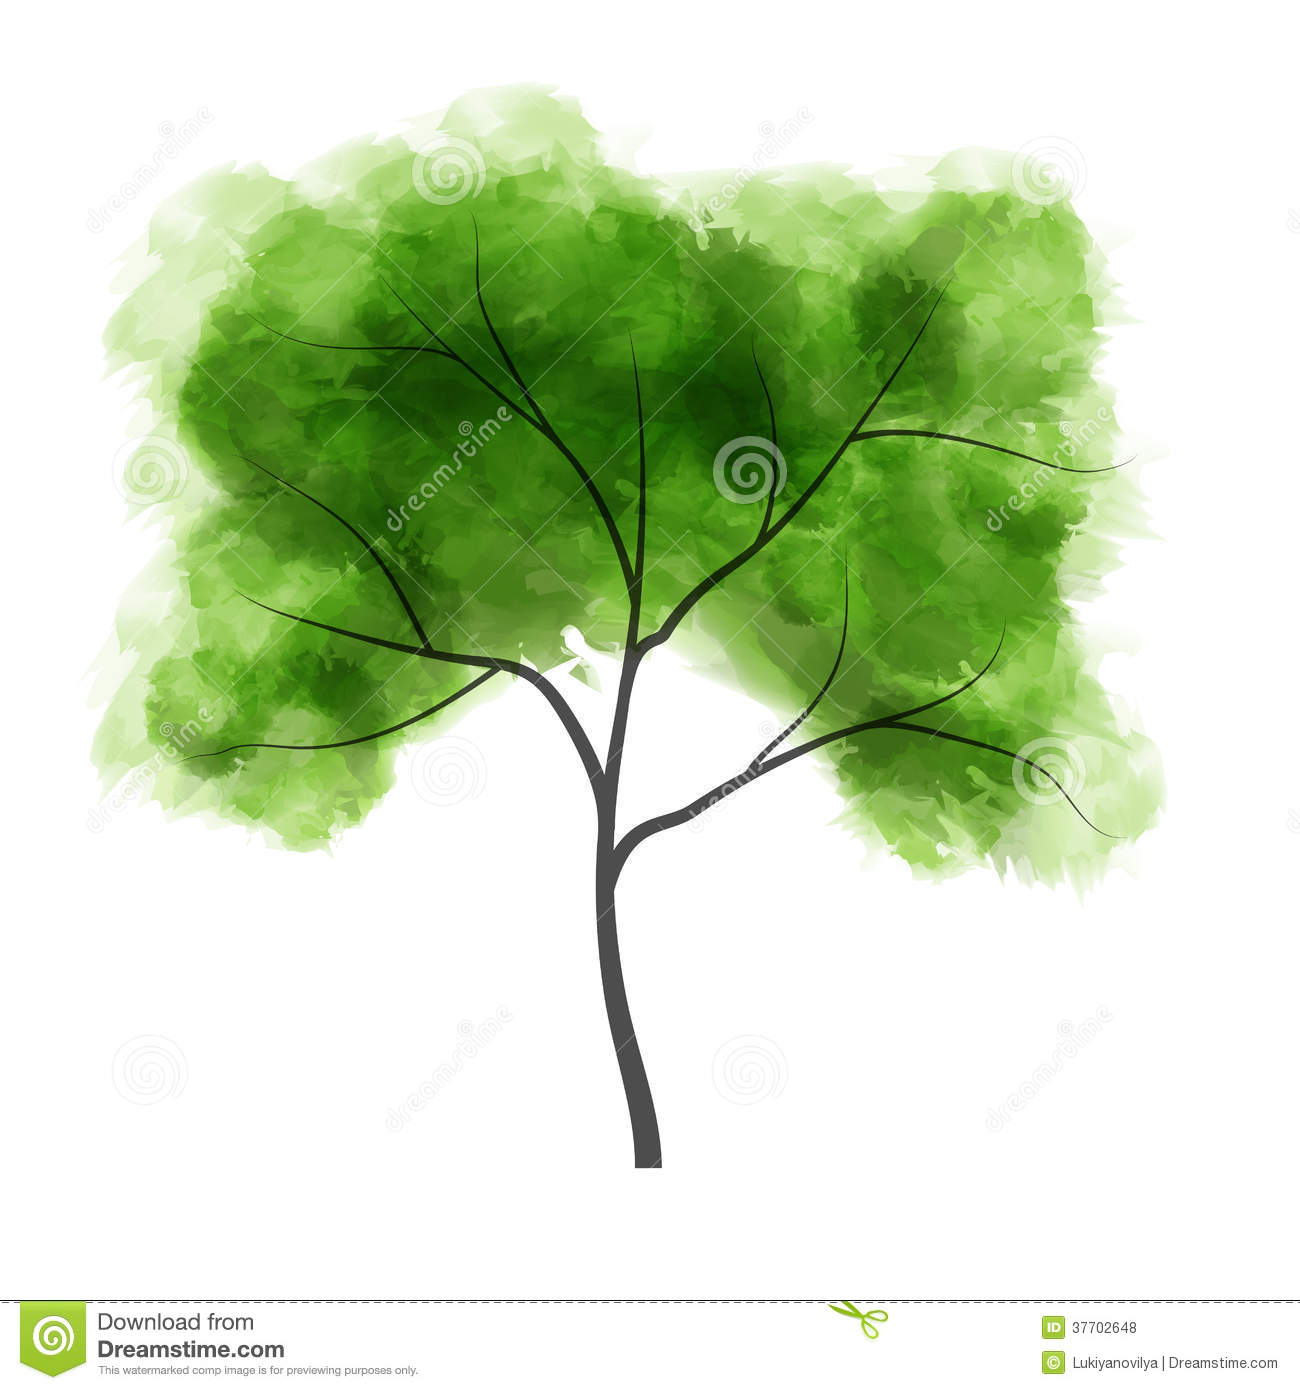 Watercolor Tree Vector Illustration Royalty Free Stock